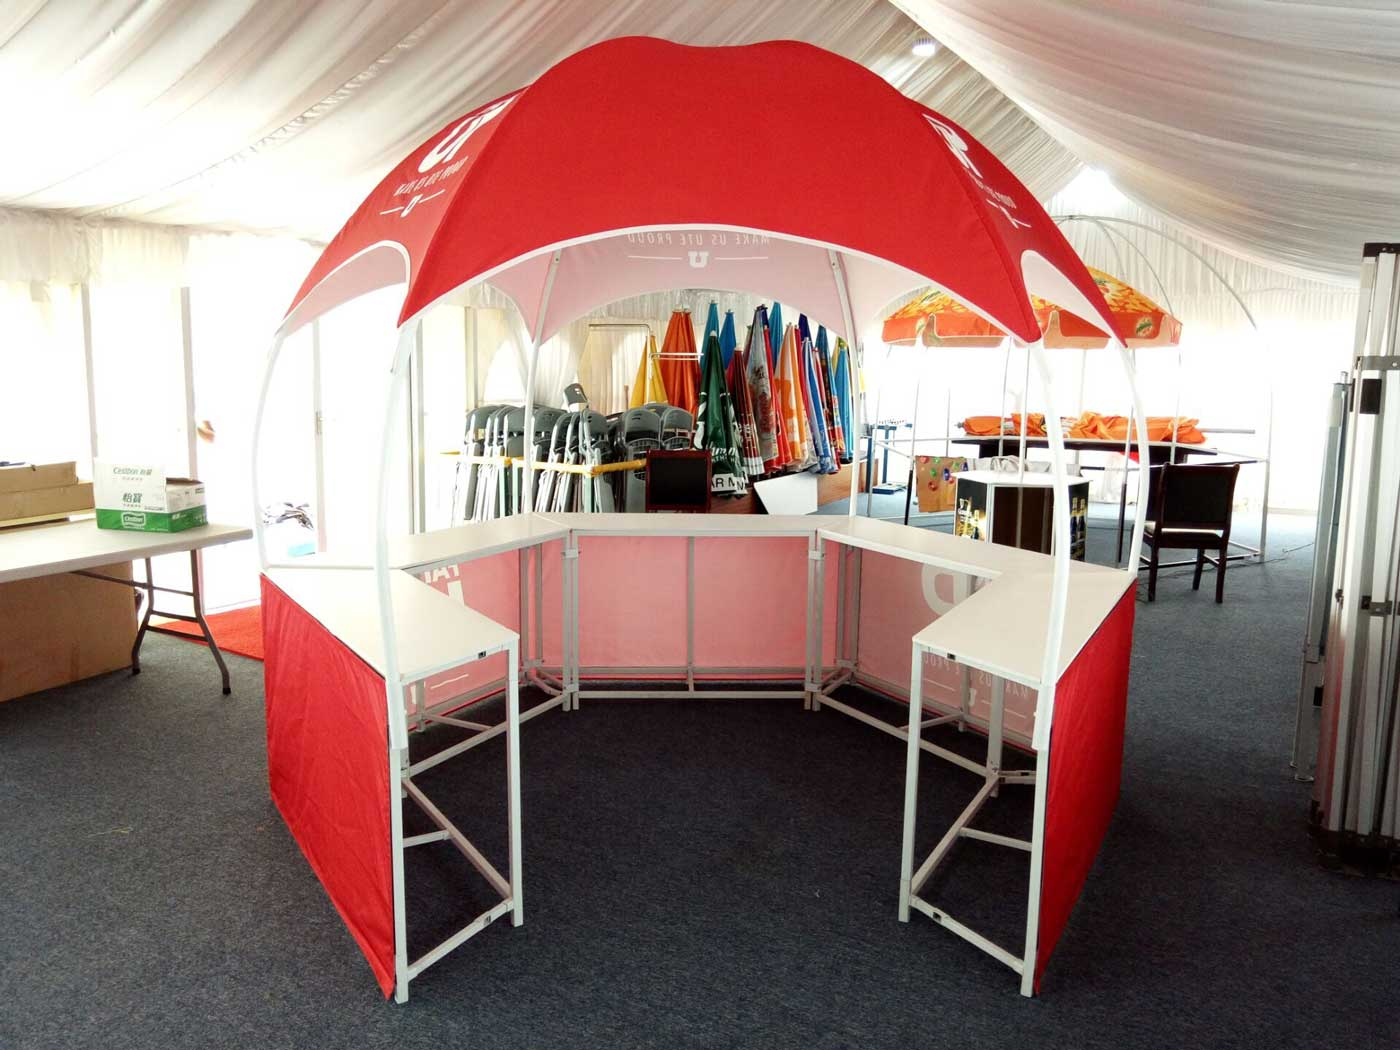 Hexagon Promotional Booth Tent Dome Tents Lemonade Stands